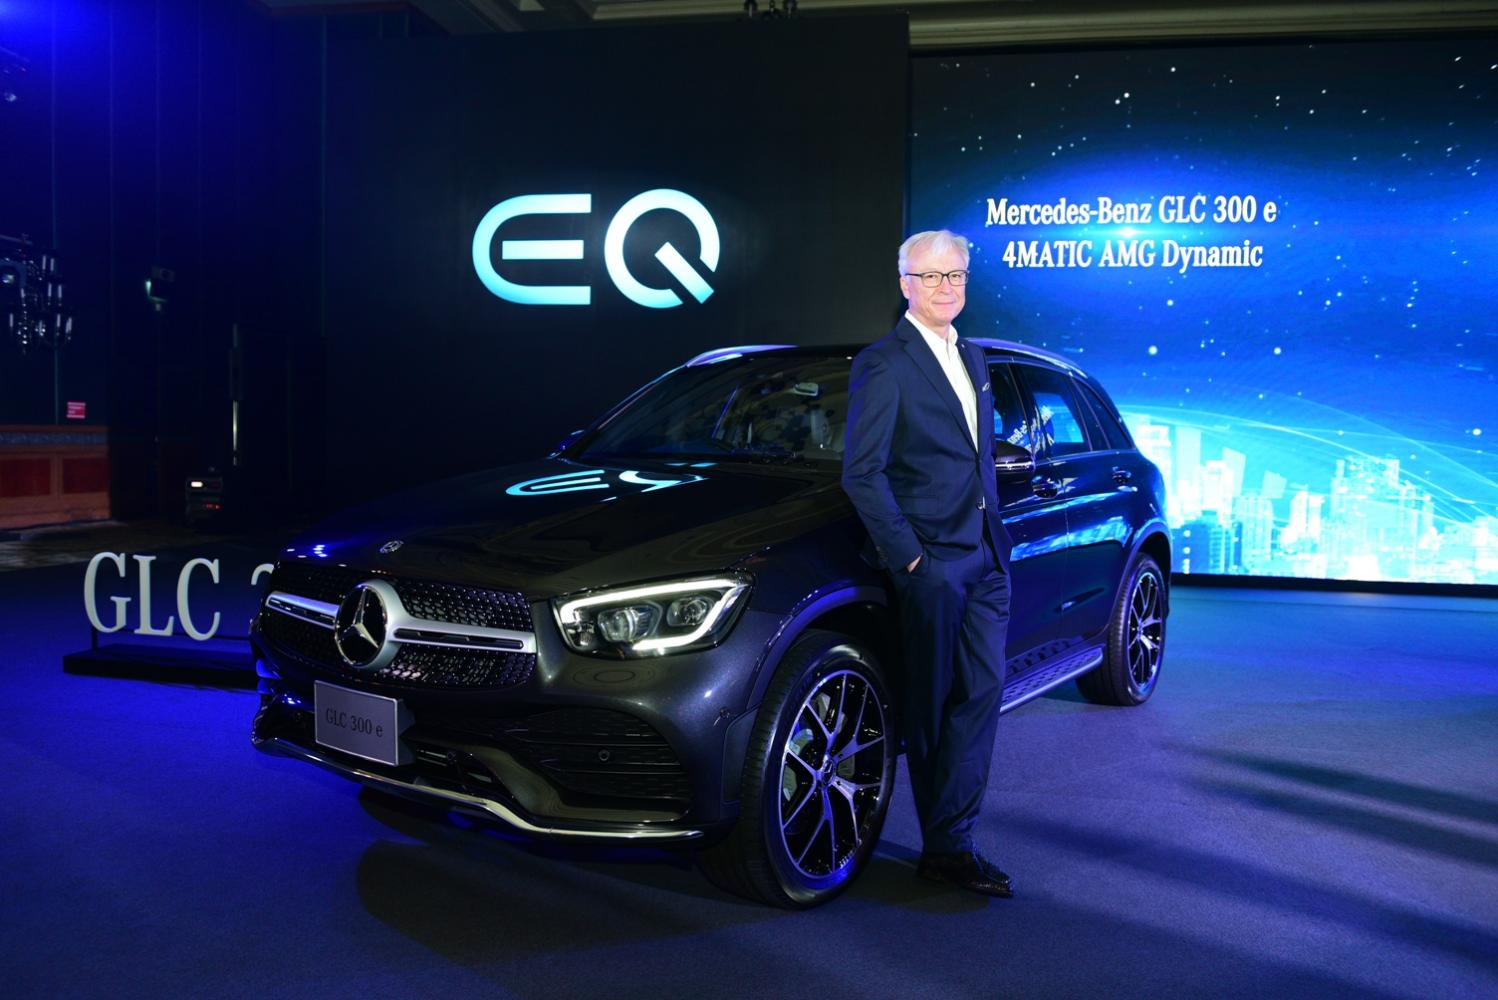 Mr Roland Folger, president and chief executive of Mercedes-Benz Thailand stands with the GLC 300 e 4MATIC AMG Dynamic to be introduced in March.